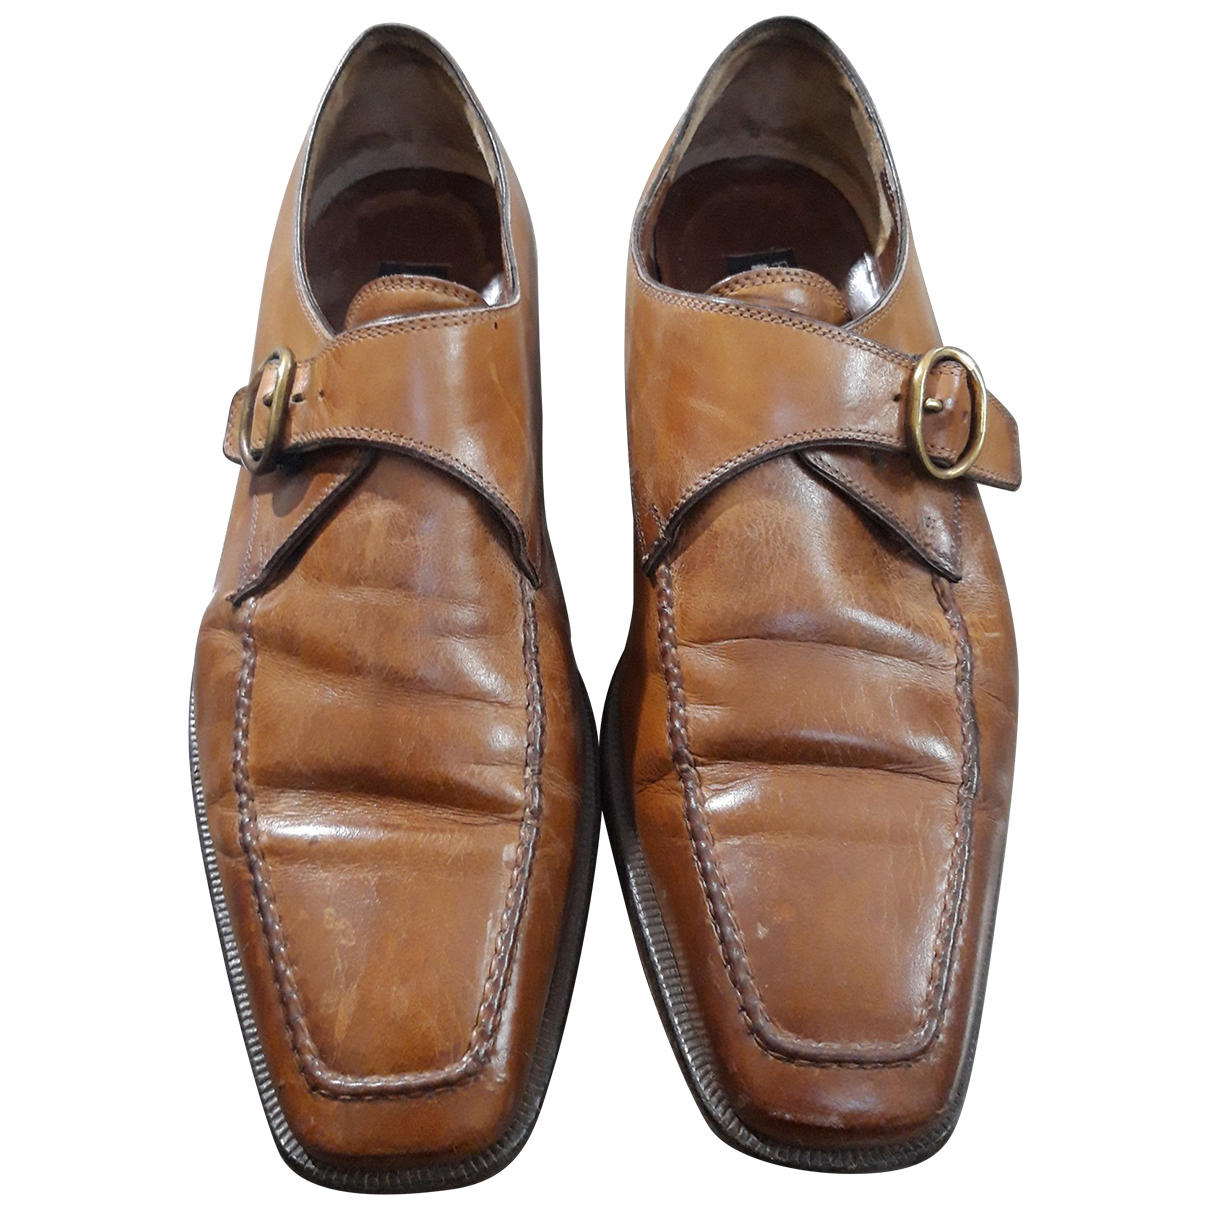 Fratelli Rossetti N Brown Leather Lace ups for Men 7.5 UK